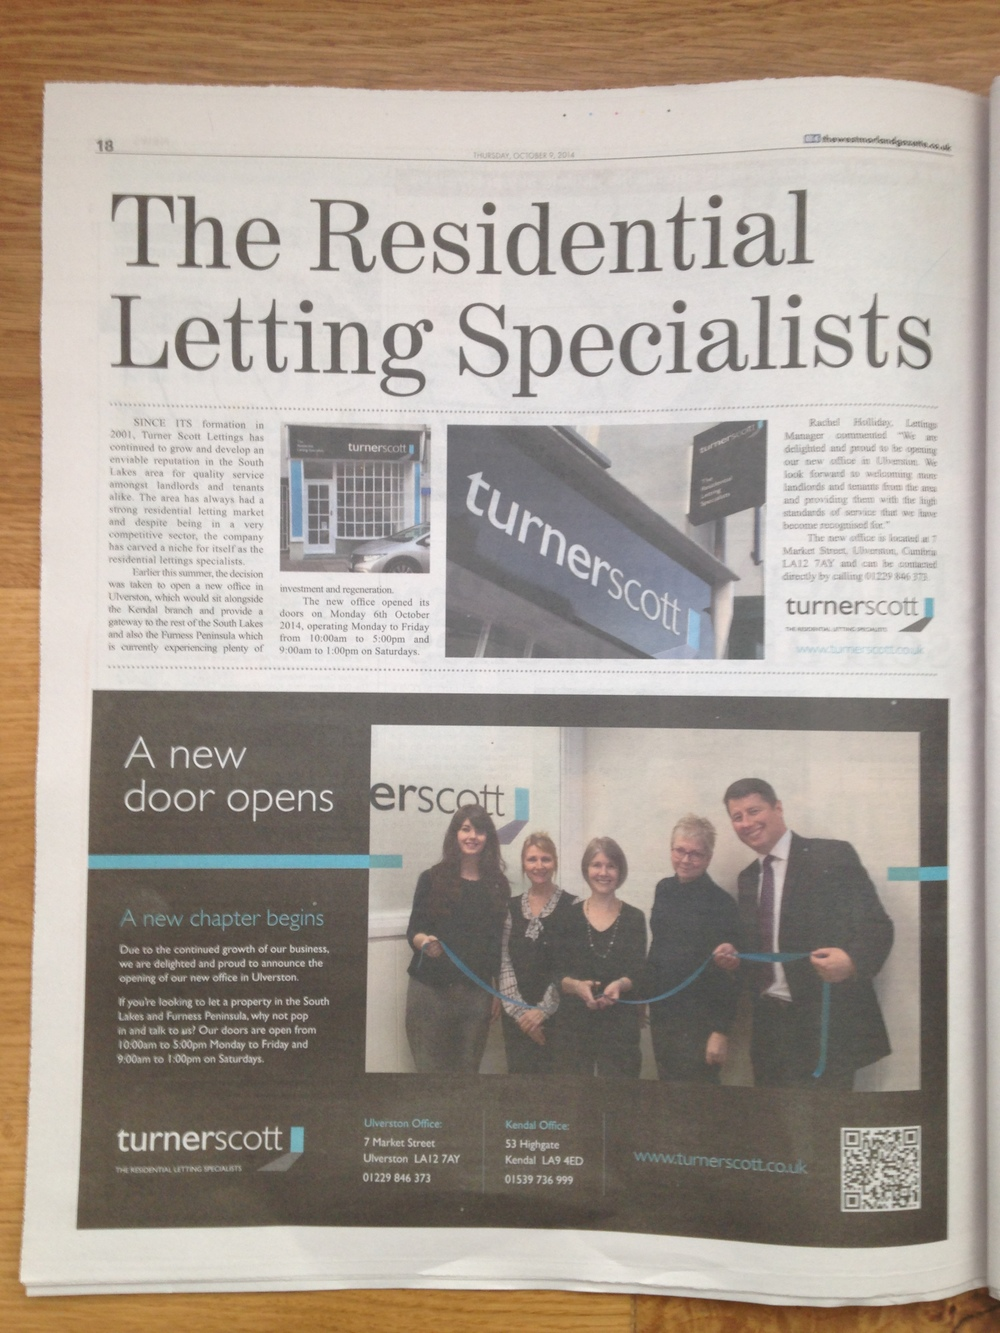 Turner Scott Residential Letting Specialists